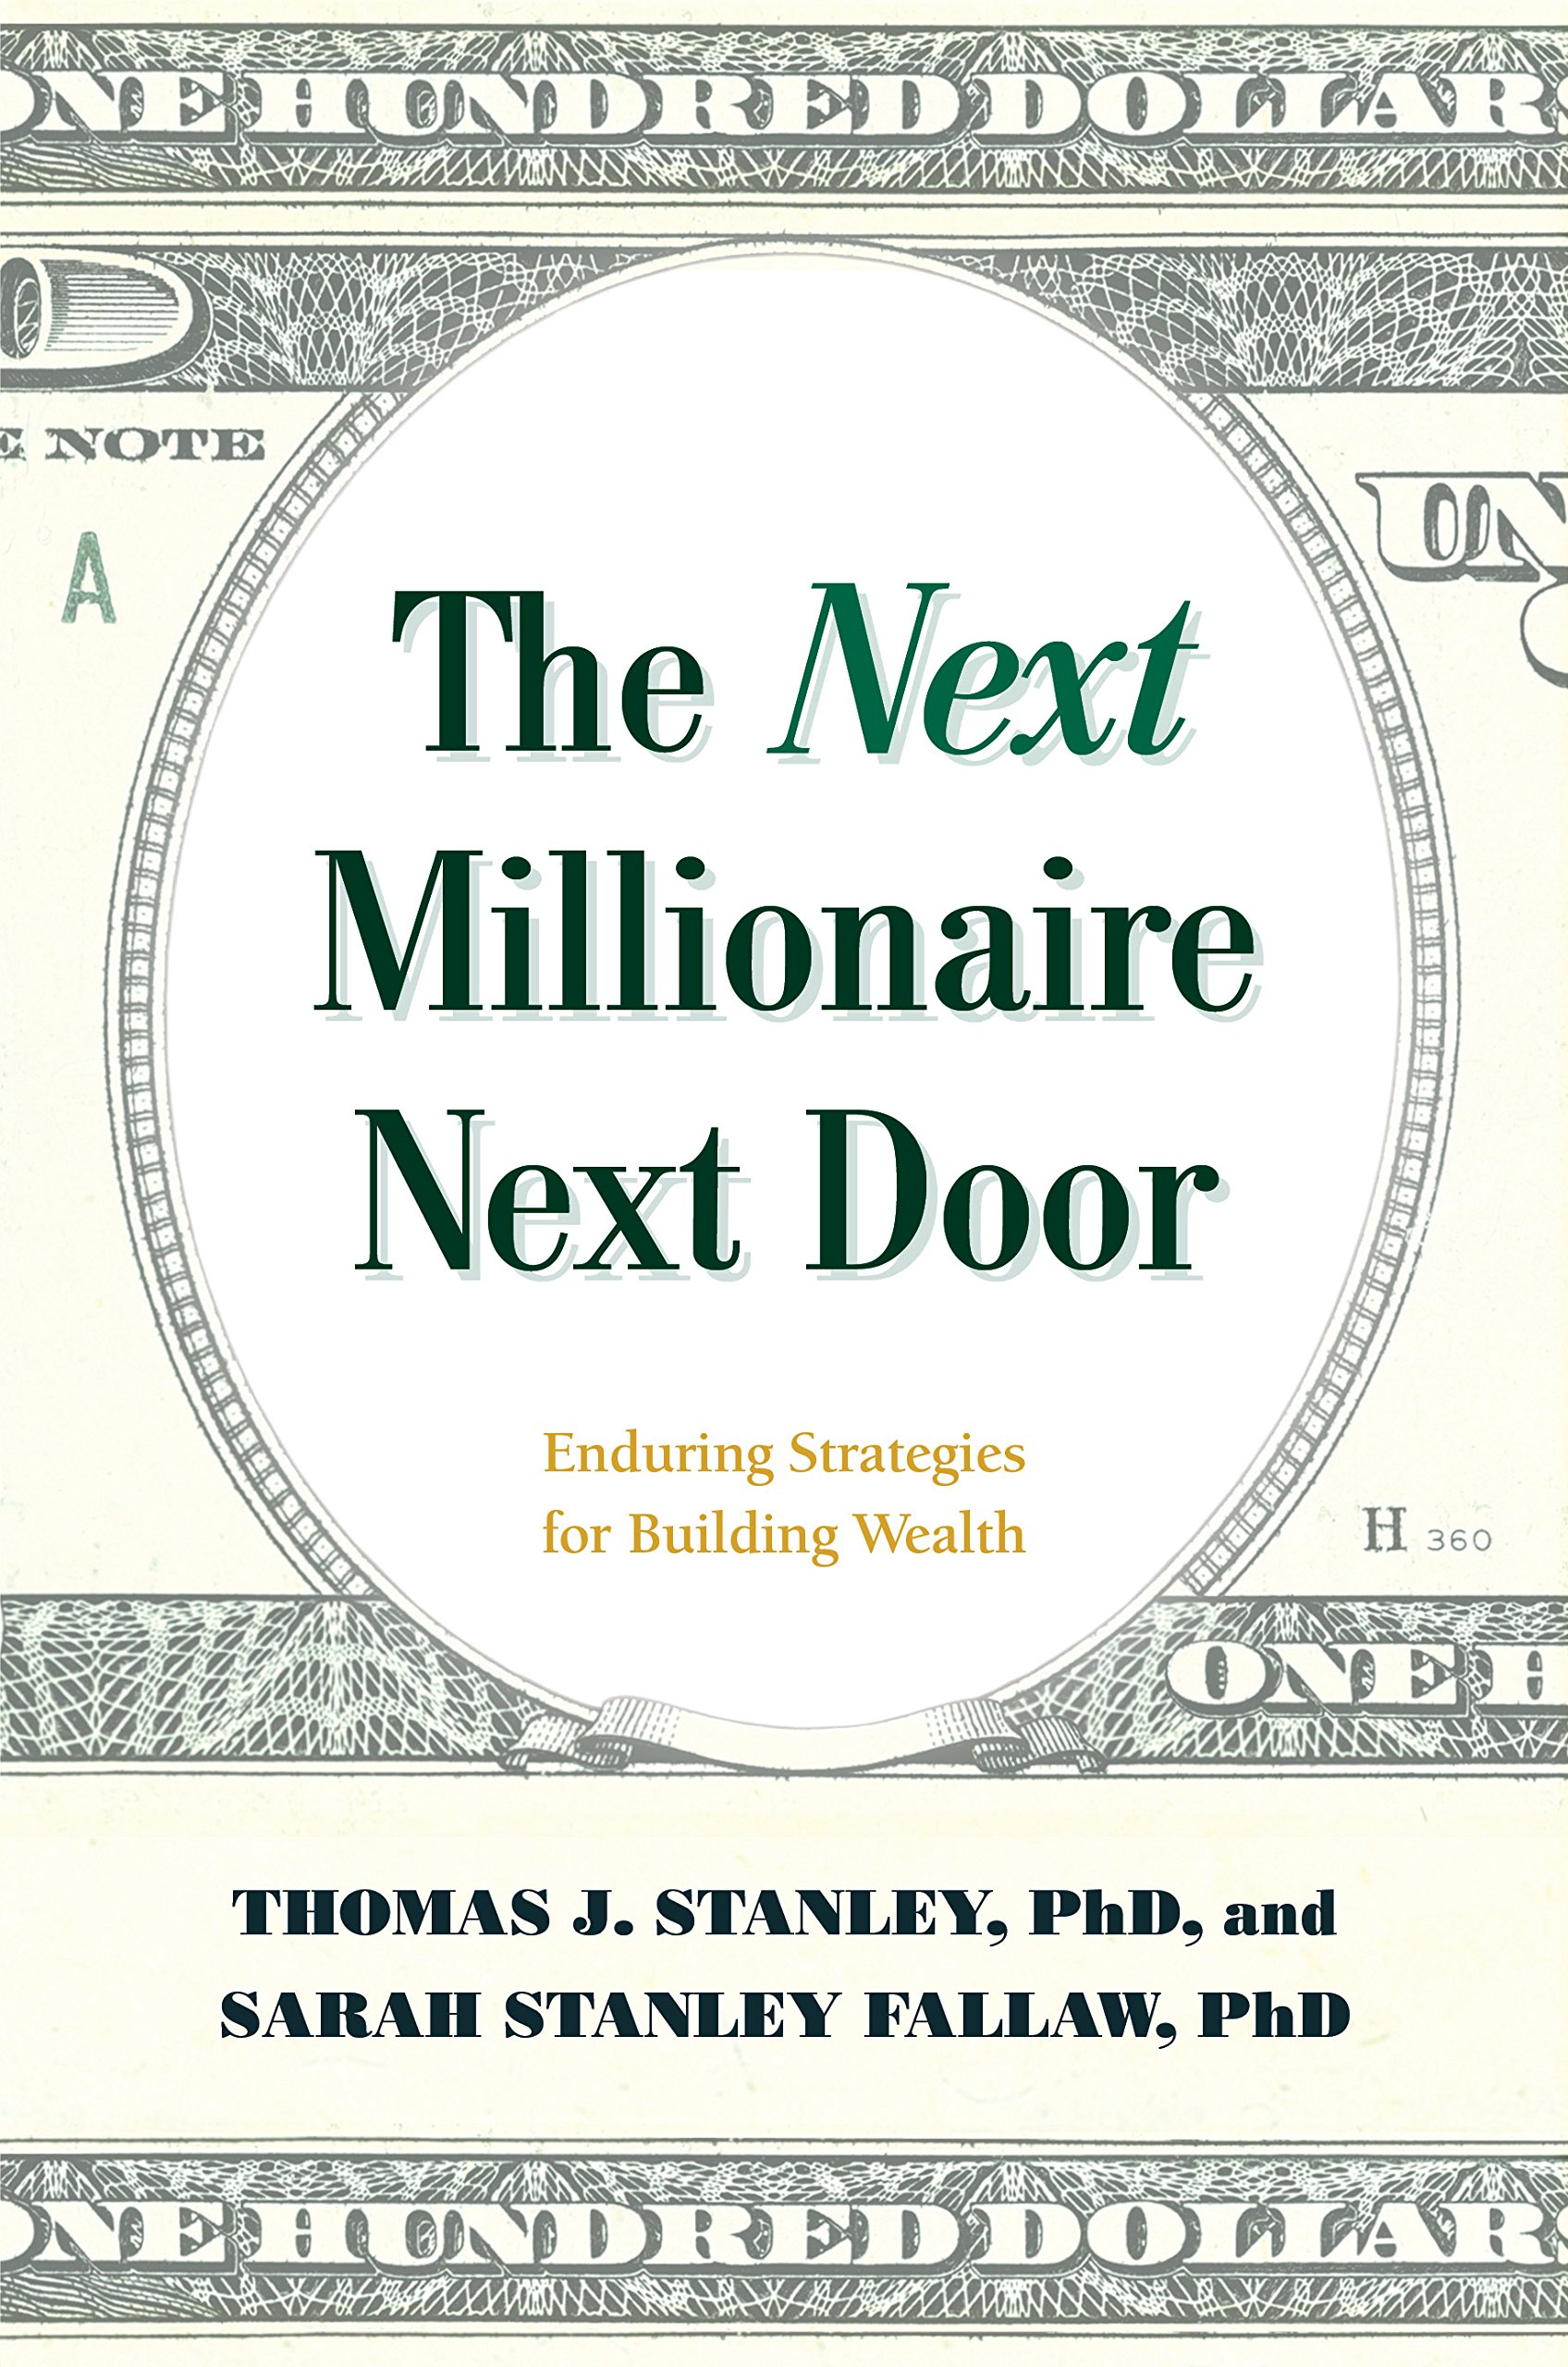 Amazon.com: The Next Millionaire Next Door: Enduring Strategies for  Building Wealth (9781493035359): Thomas J. Stanley Ph.D., Sarah Stanley  Fallaw Ph.D: ...